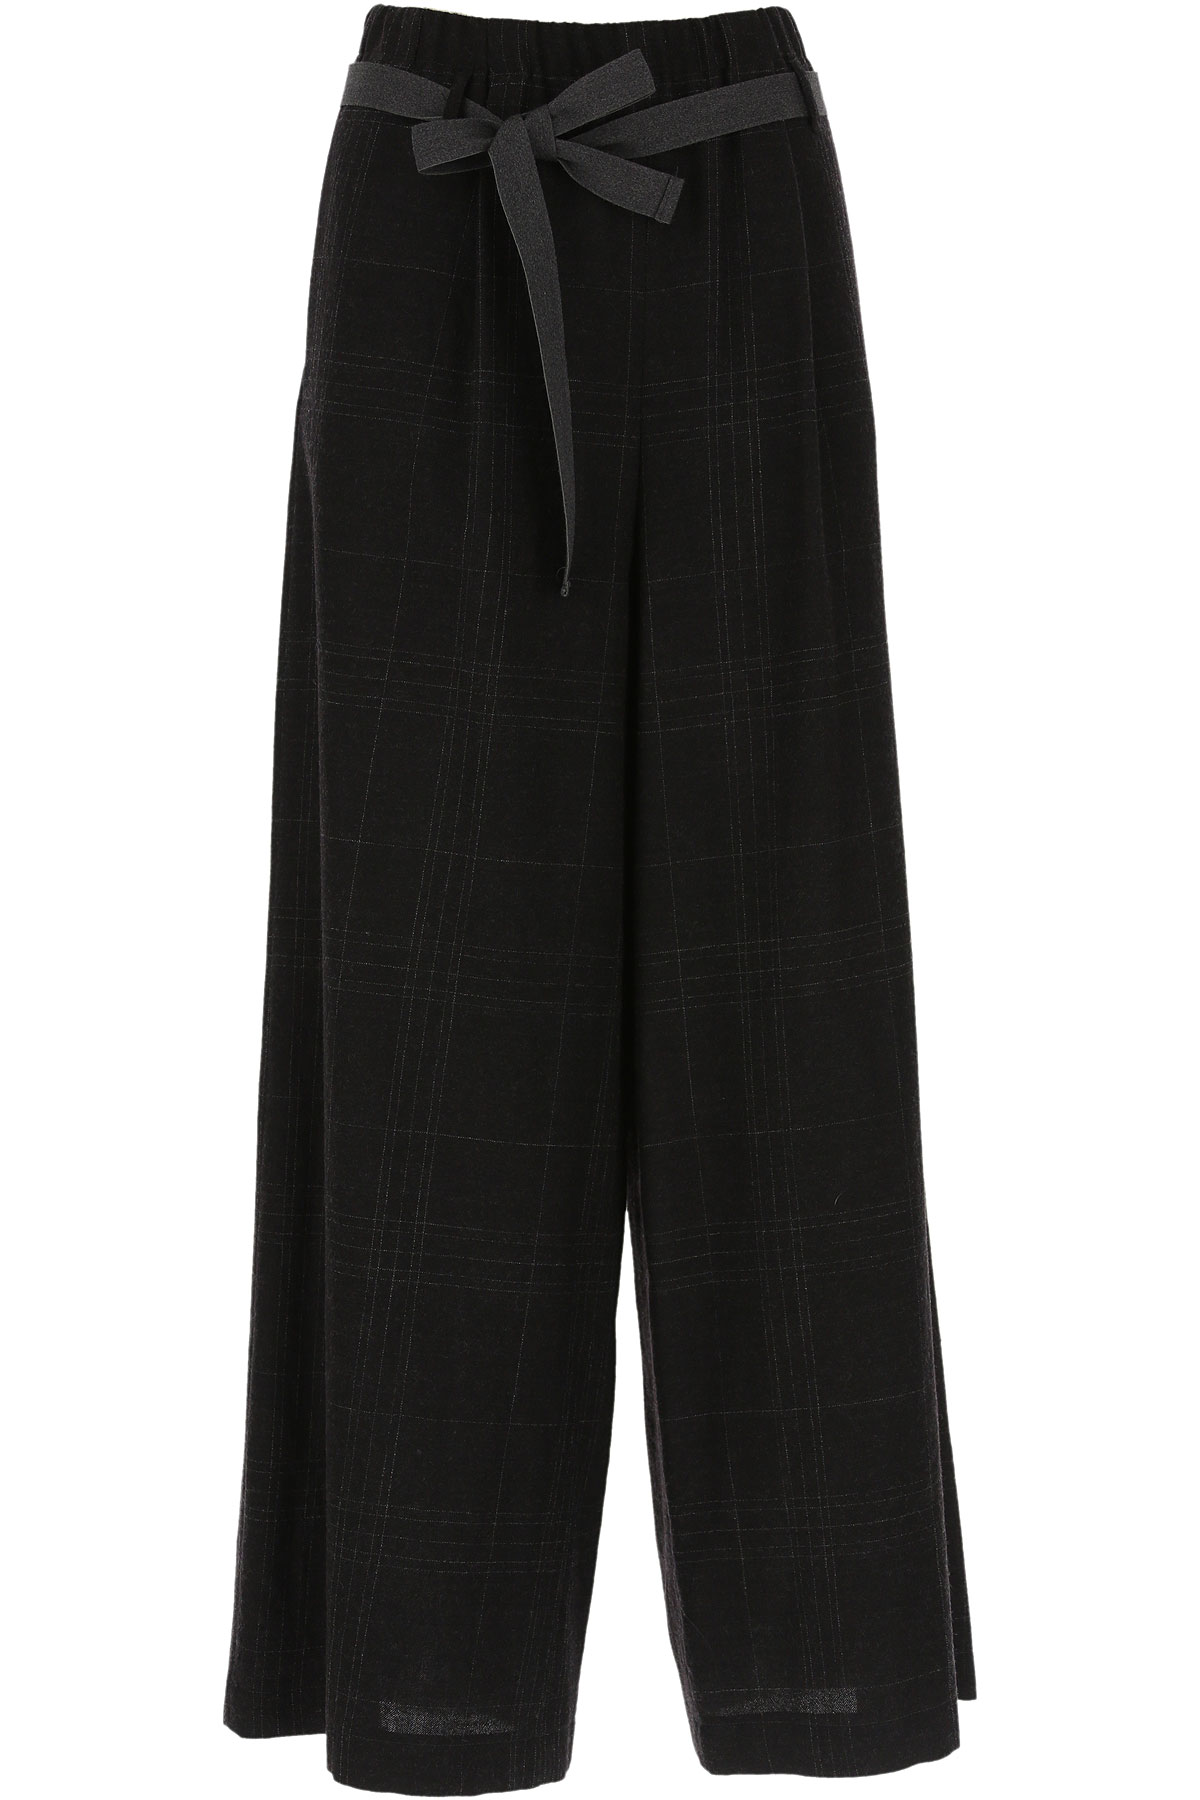 ALYSI Pants for Women, Anthracite Grey, Virgin wool, 2019, 26 30